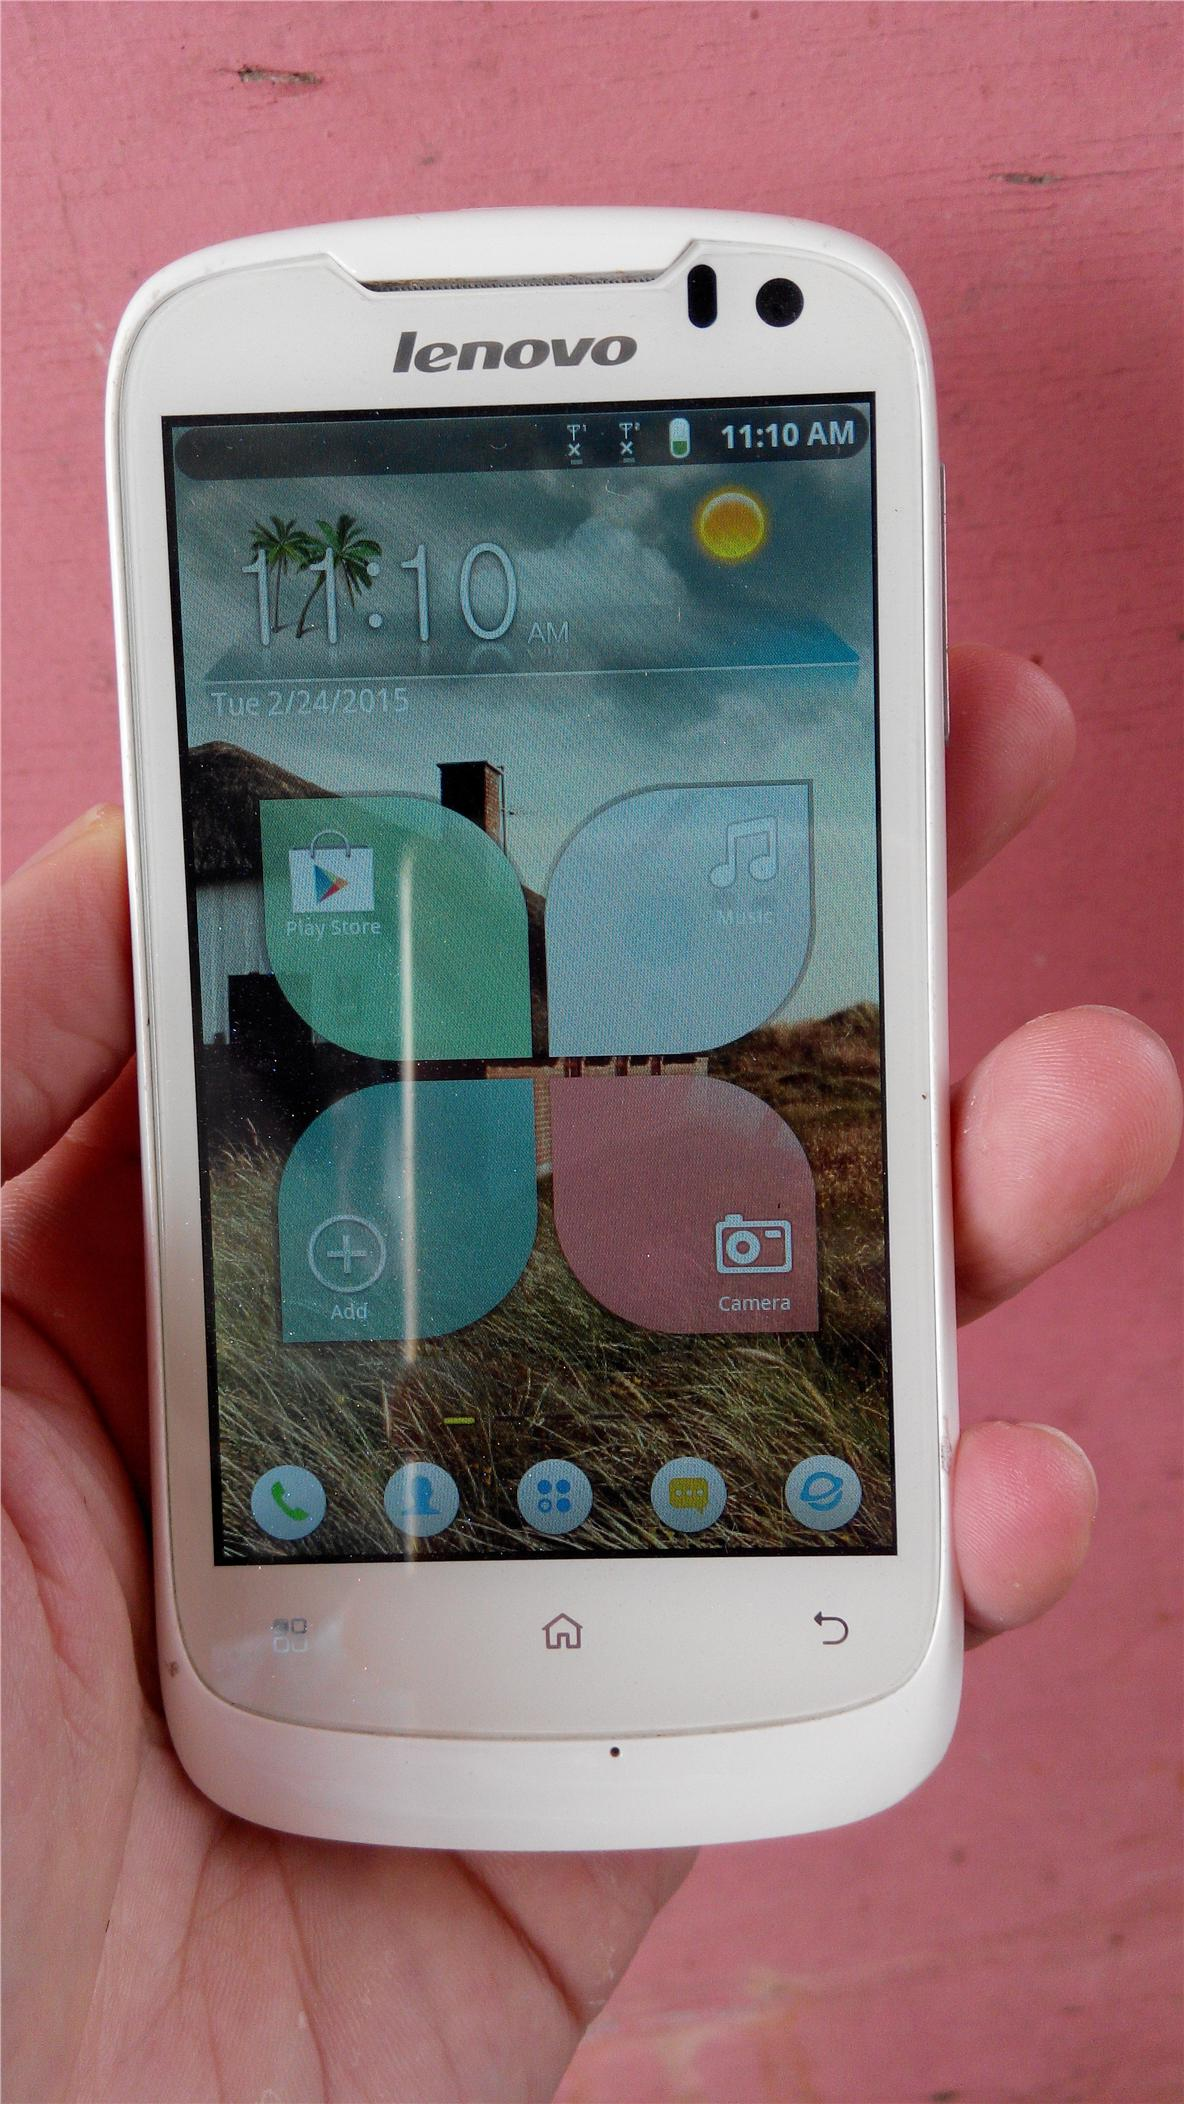 Phone Second Hand Android Phones second hand used smart phonelenovo end 2242016 1115 am a520 androidlike newlow price